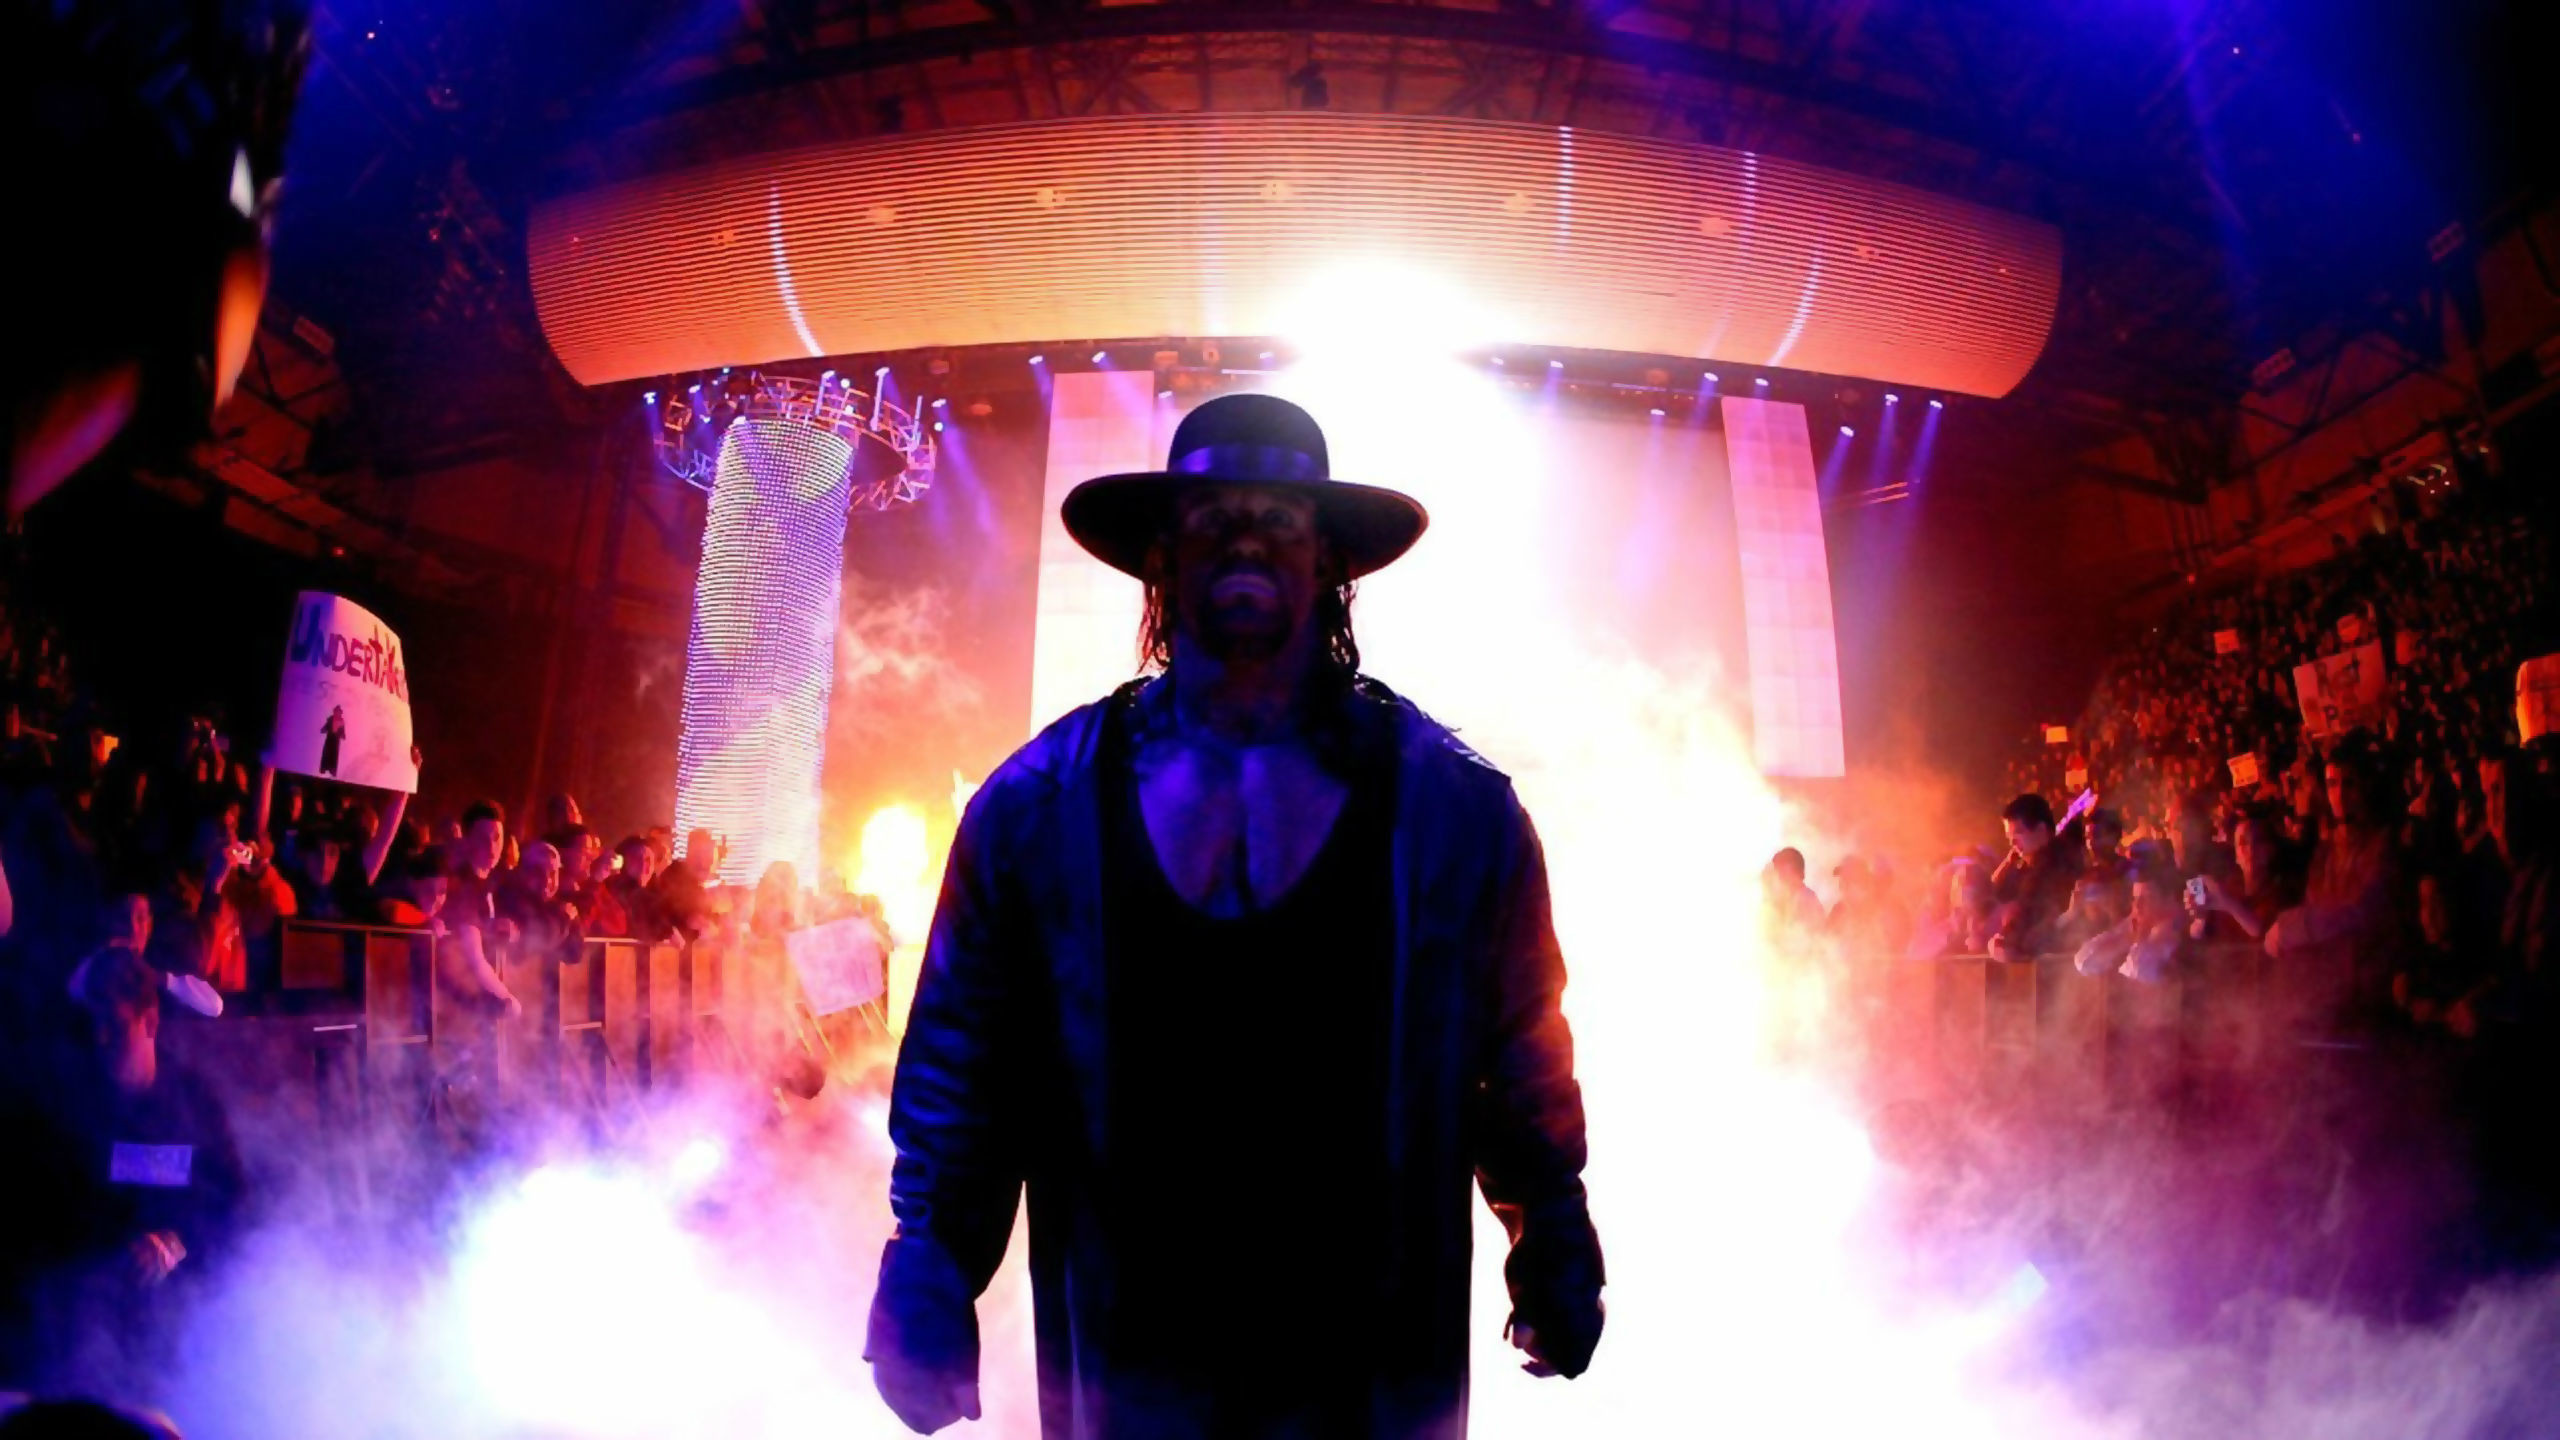 2560x1440  Check out Undertaker WWE Champion HD Photos And Undertaker HD  Wallpapers in widescreen resolution See WWE Superstar High Definition hd  Images And ...